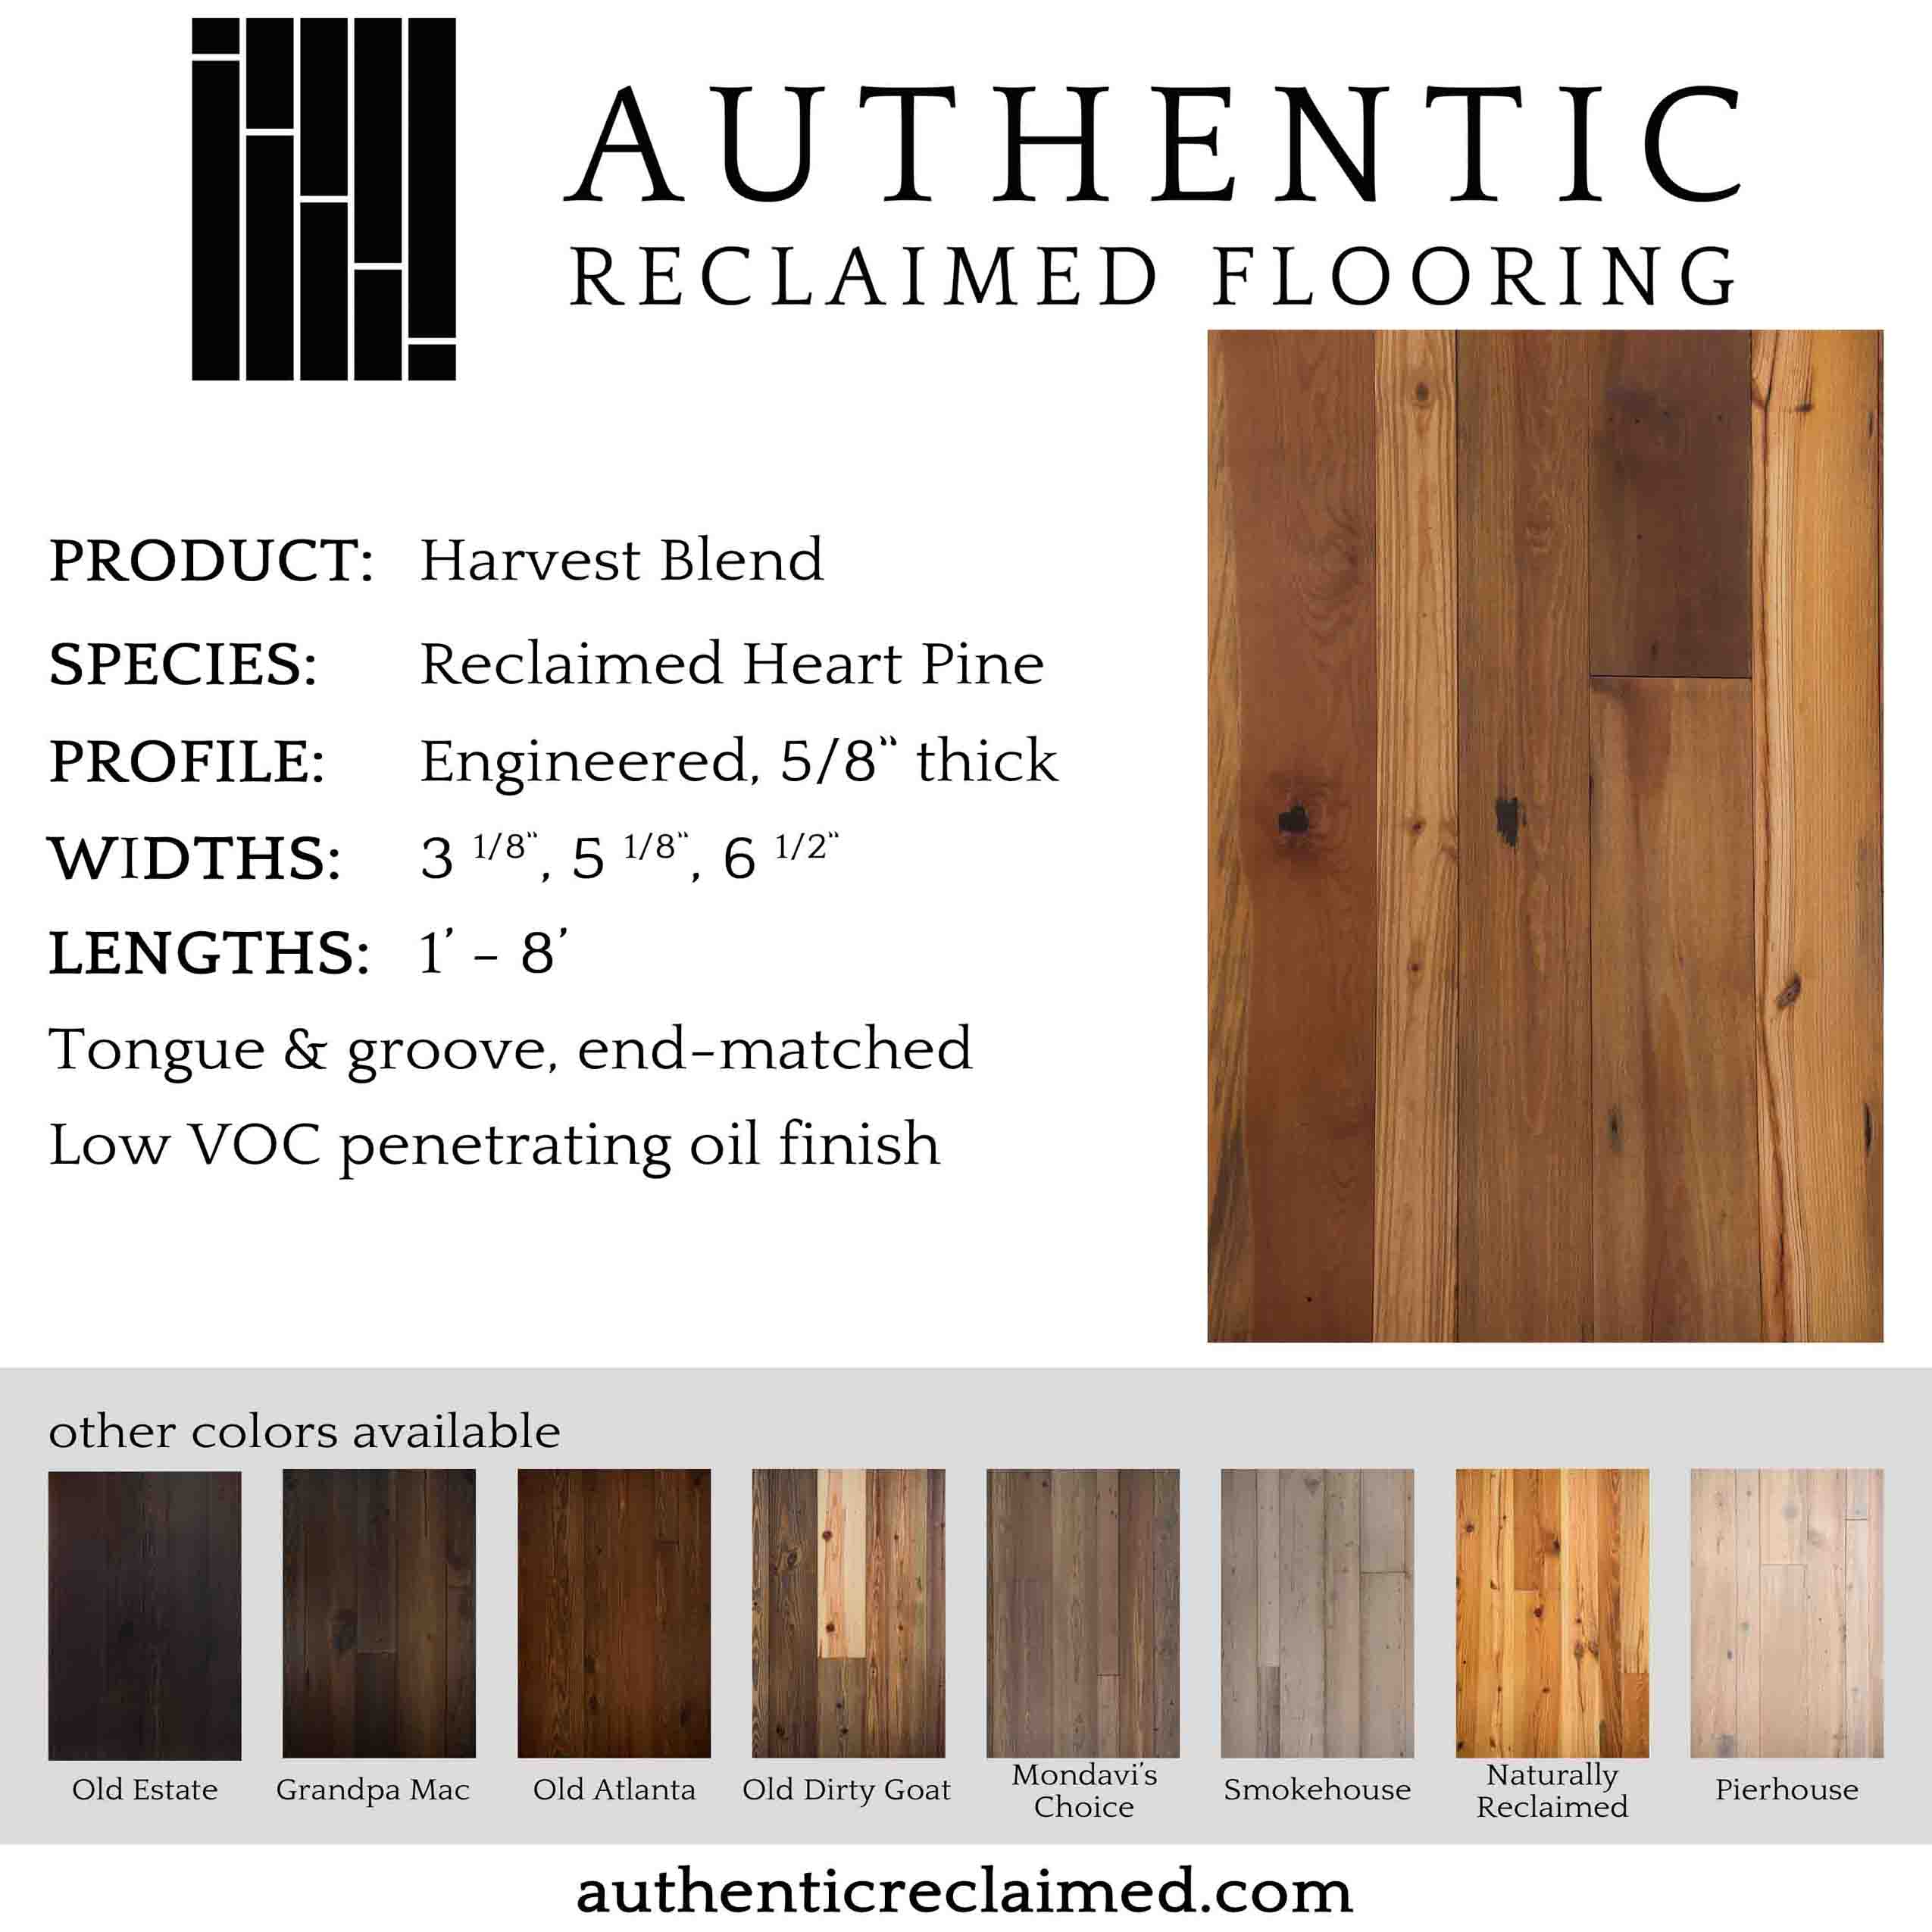 Authentic Reclaimed Flooring Expands Production to Include New ...